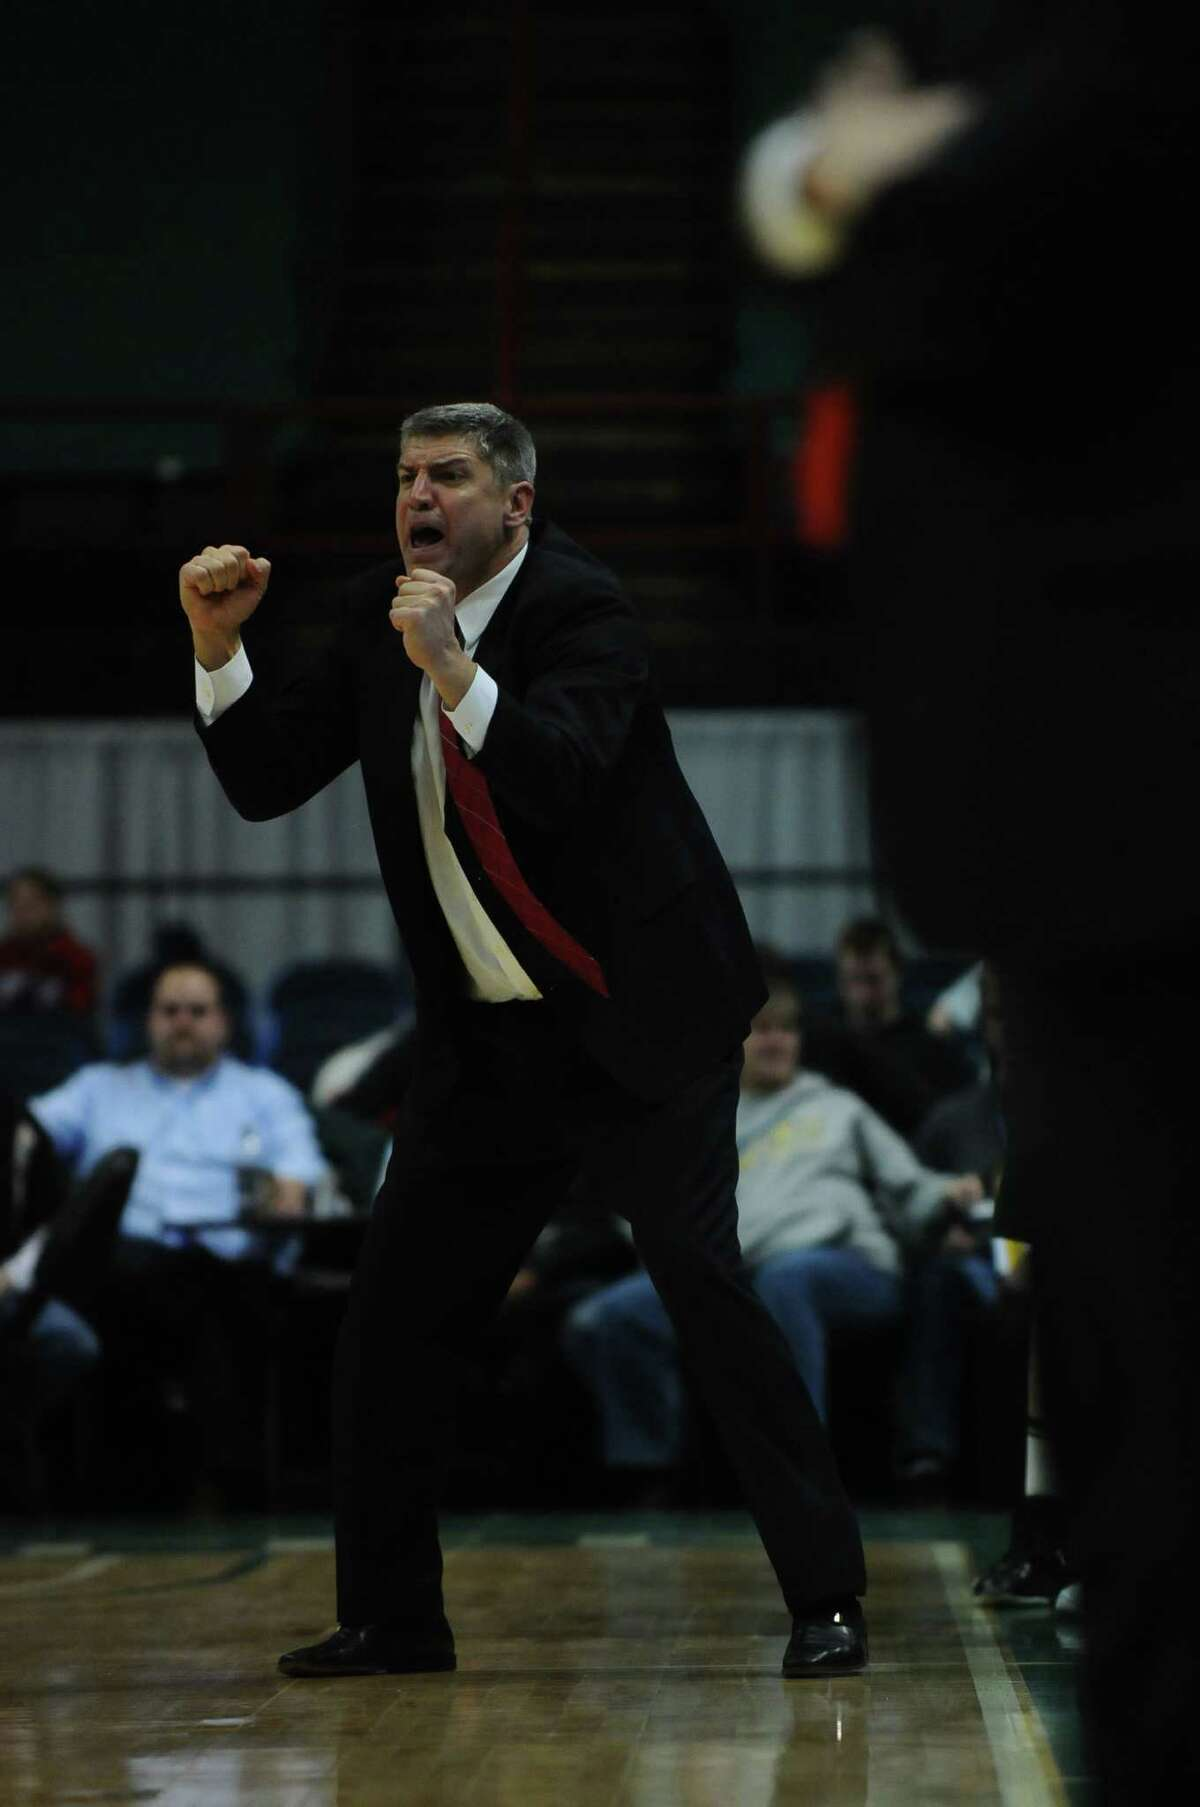 Loyola head coach Jimmy Patsos cheers on his team during the second half of Siena's 76-69 loss to Loyola at the Times Union Center in Albany, NY on Monday February 7, 2011. ( Philip Kamrass / Times Union )